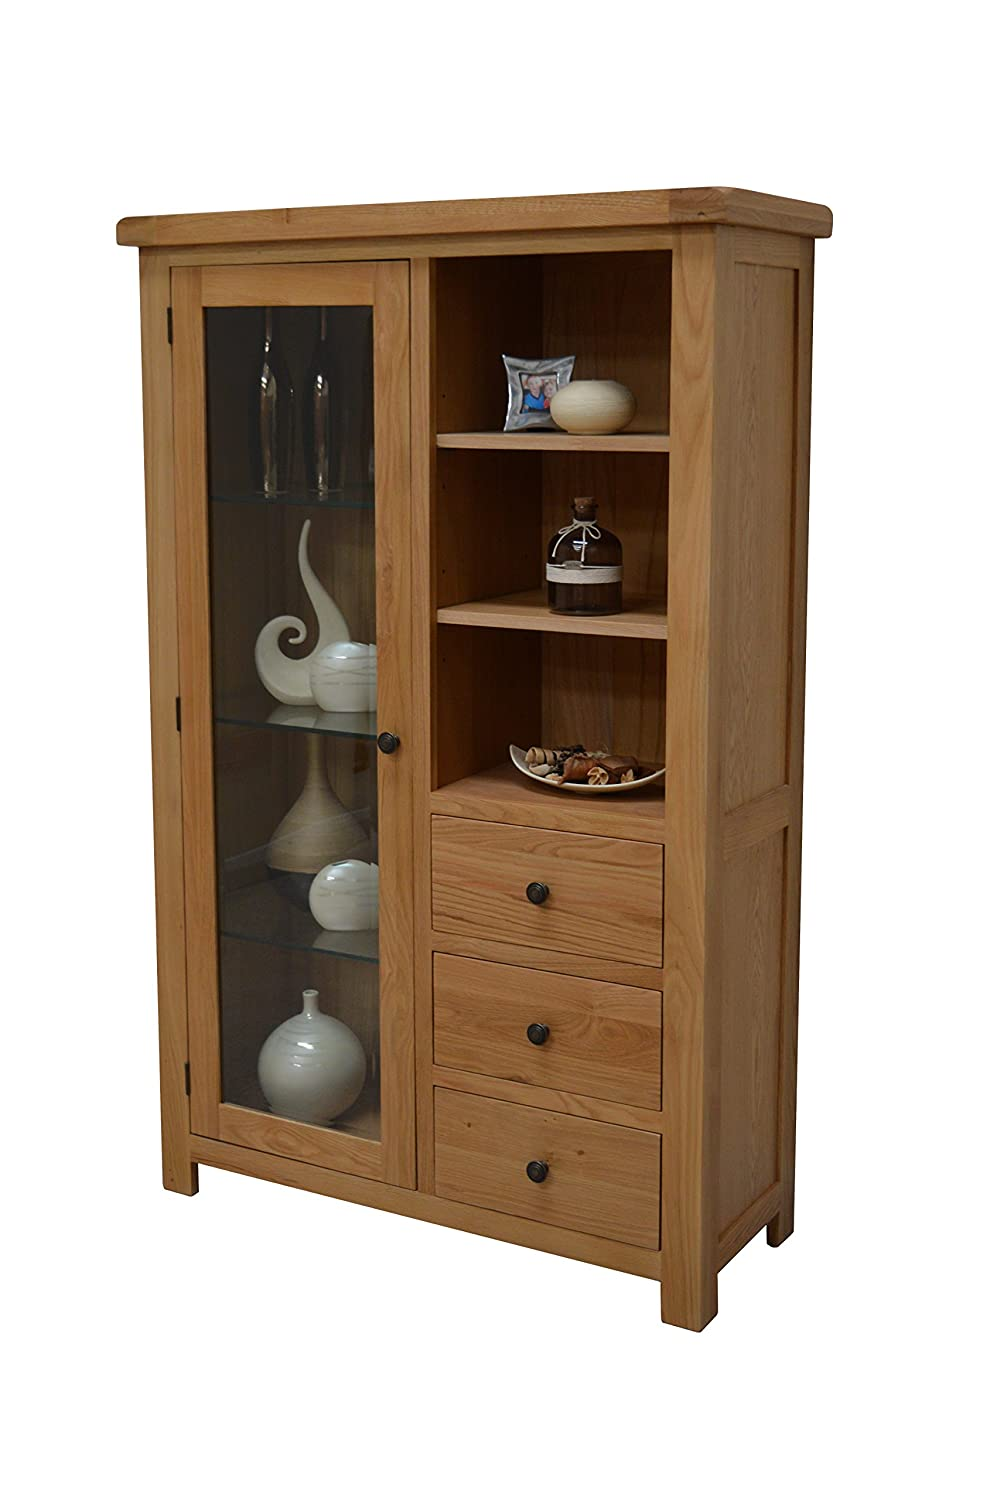 Light Oak Living Room Furniture Camberley Oak Glass Display Cabinet Includes Three Glass Shelves